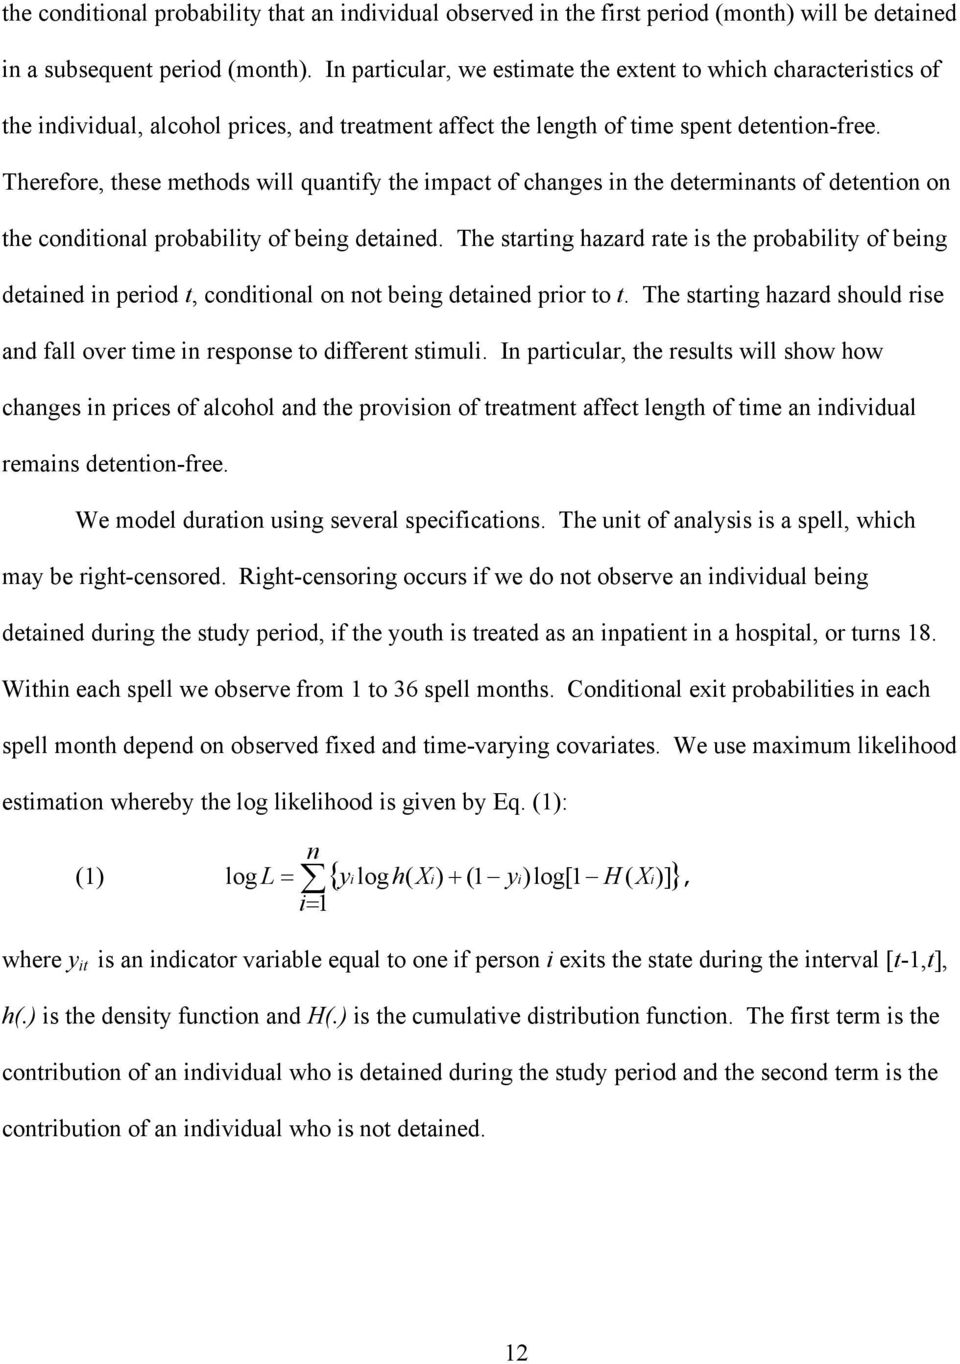 Therefore, these methods will quantify the impact of changes in the determinants of detention on the conditional probability of being detained.